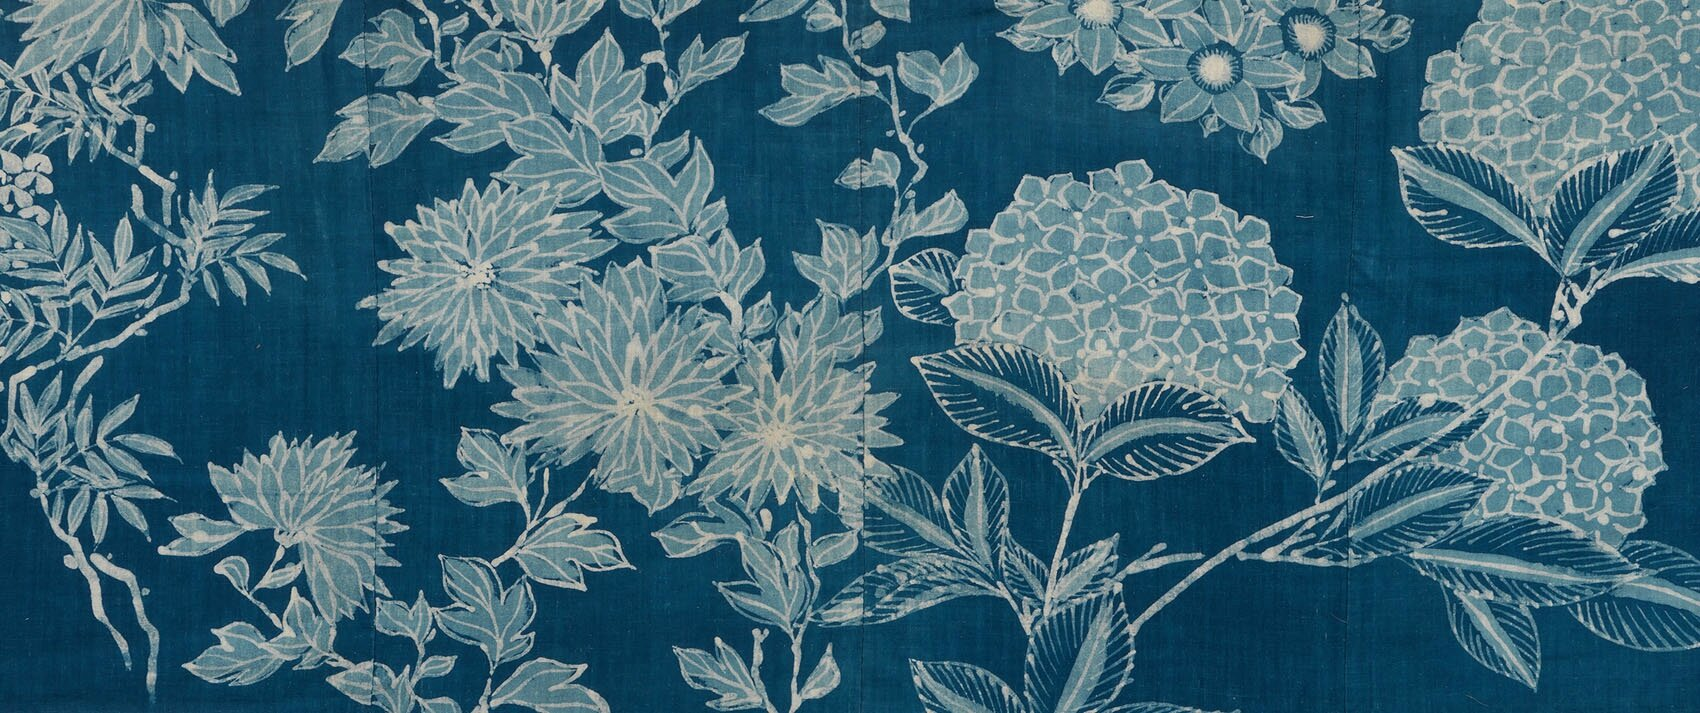 The meaning and history of the colour blue explored in exhibition at the meaning and history of the colour blue explored in exhibition at the national gallery of victoria izmirmasajfo